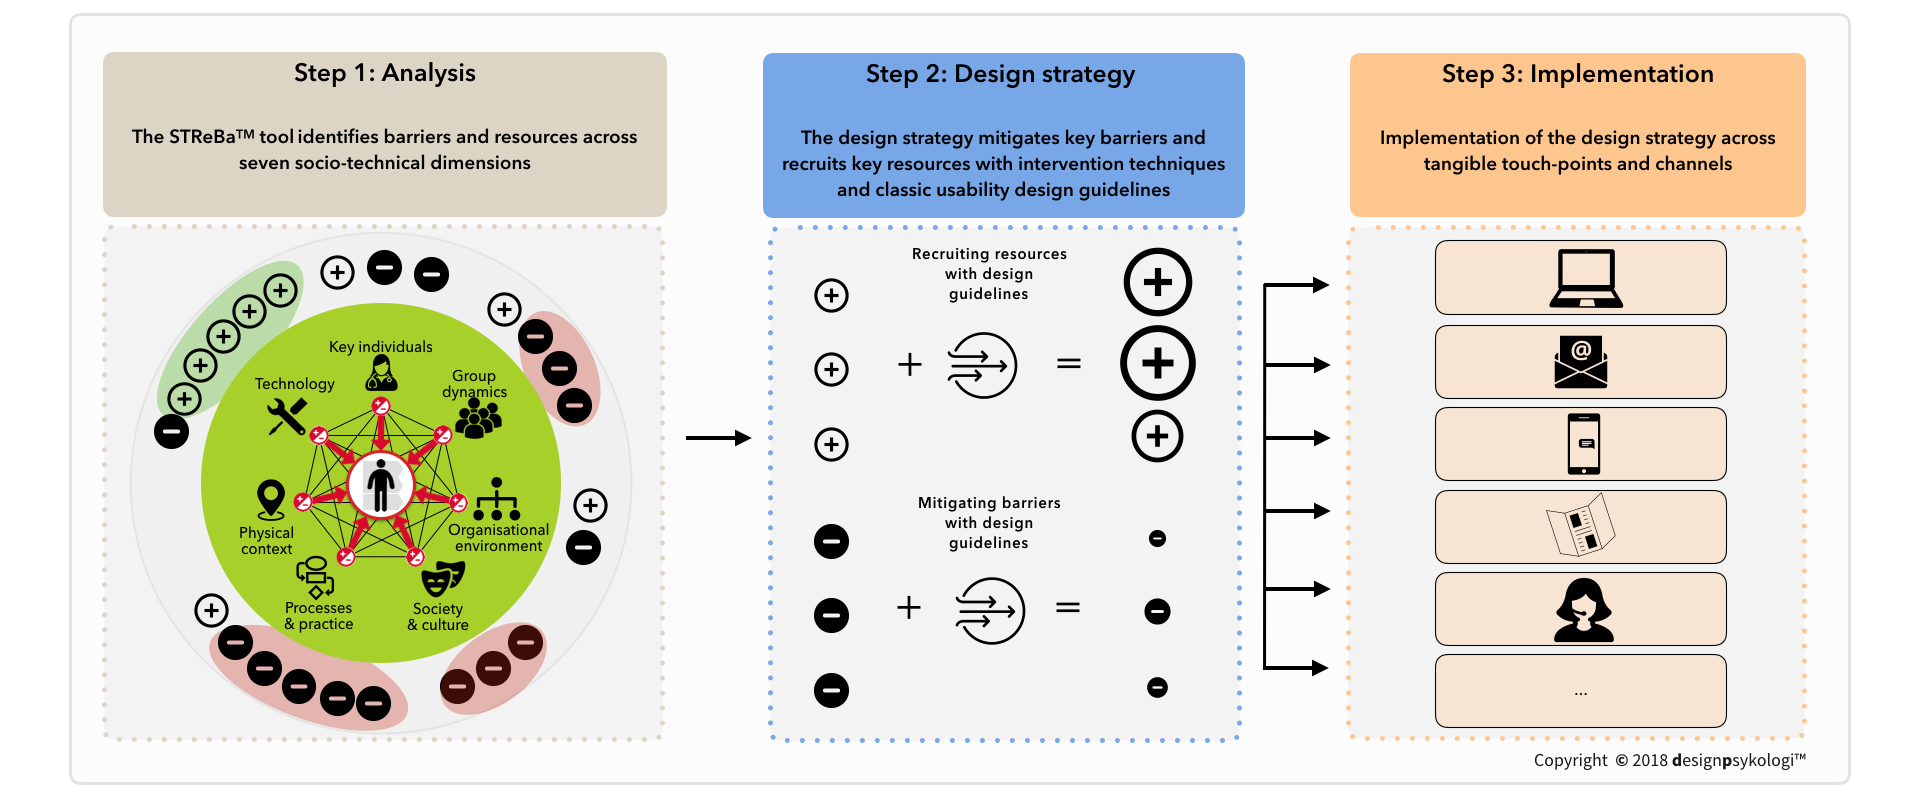 Graphic:    The Behavioral Mode of Action™ (BMOA™) is a tool that consists of three steps to help companies systematically transform patient insights into sustainable intervention strategies.